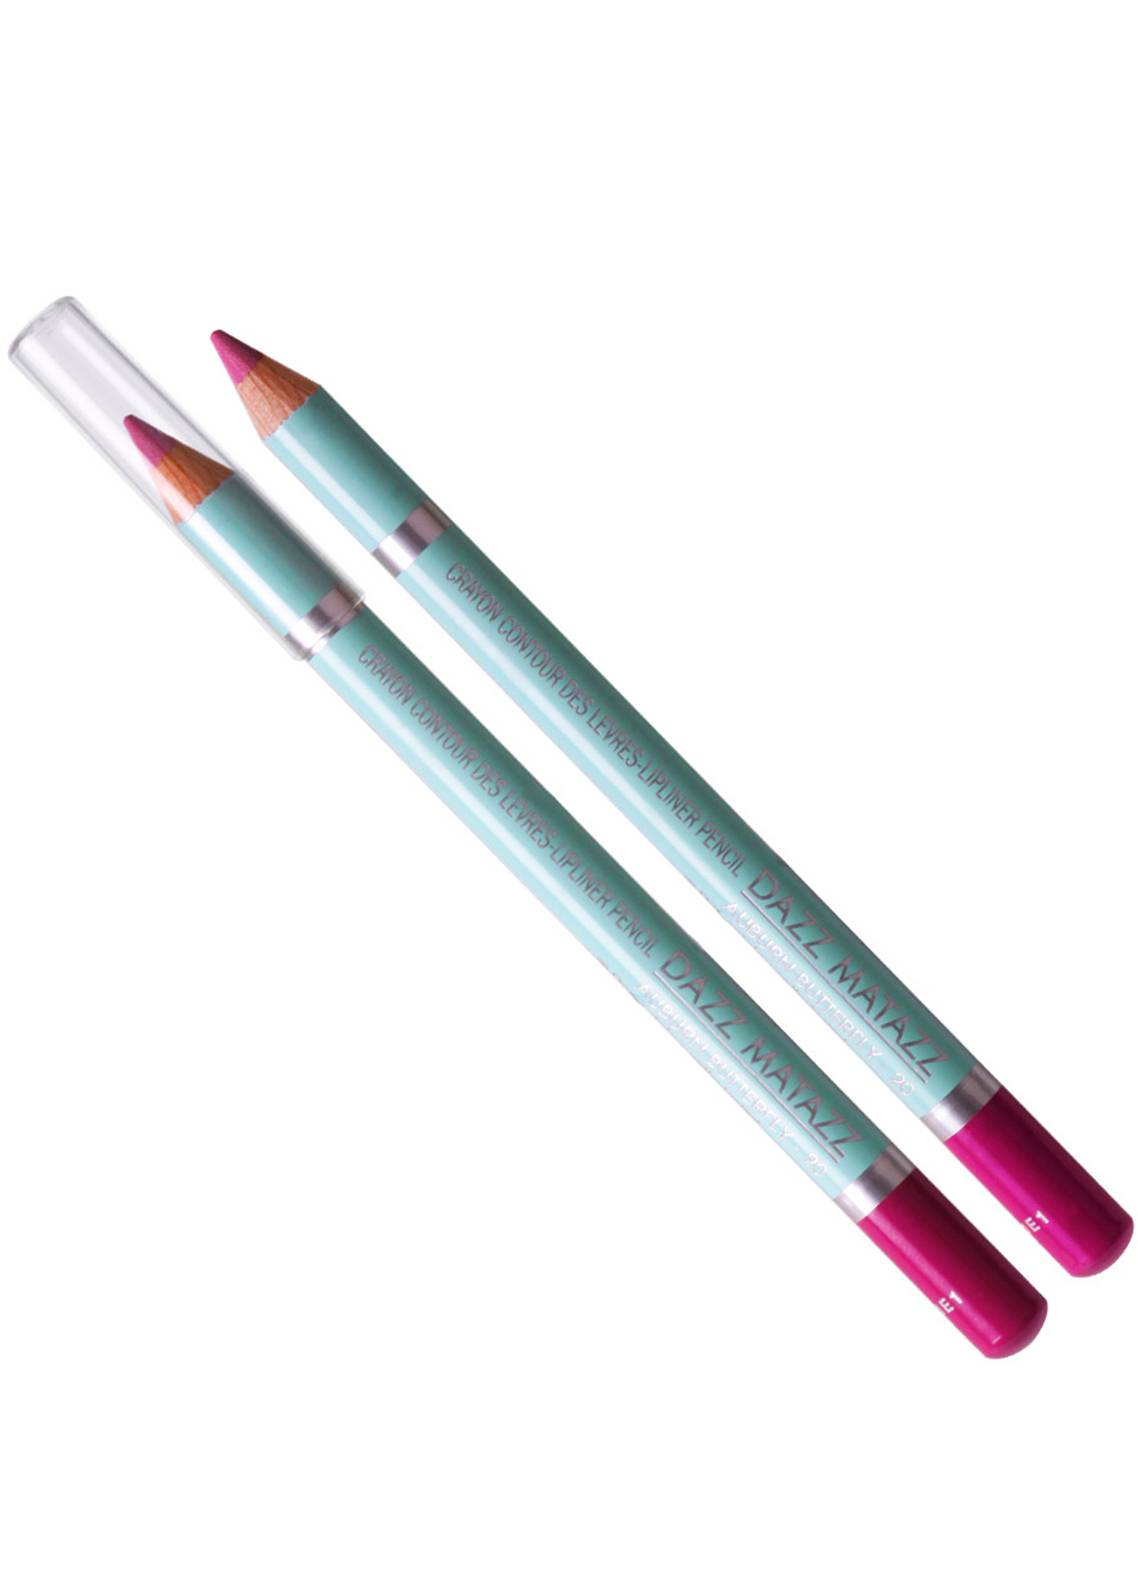 Dazz Matazz Lip Liner Pencil-20 AUBURN BUTTEFLY